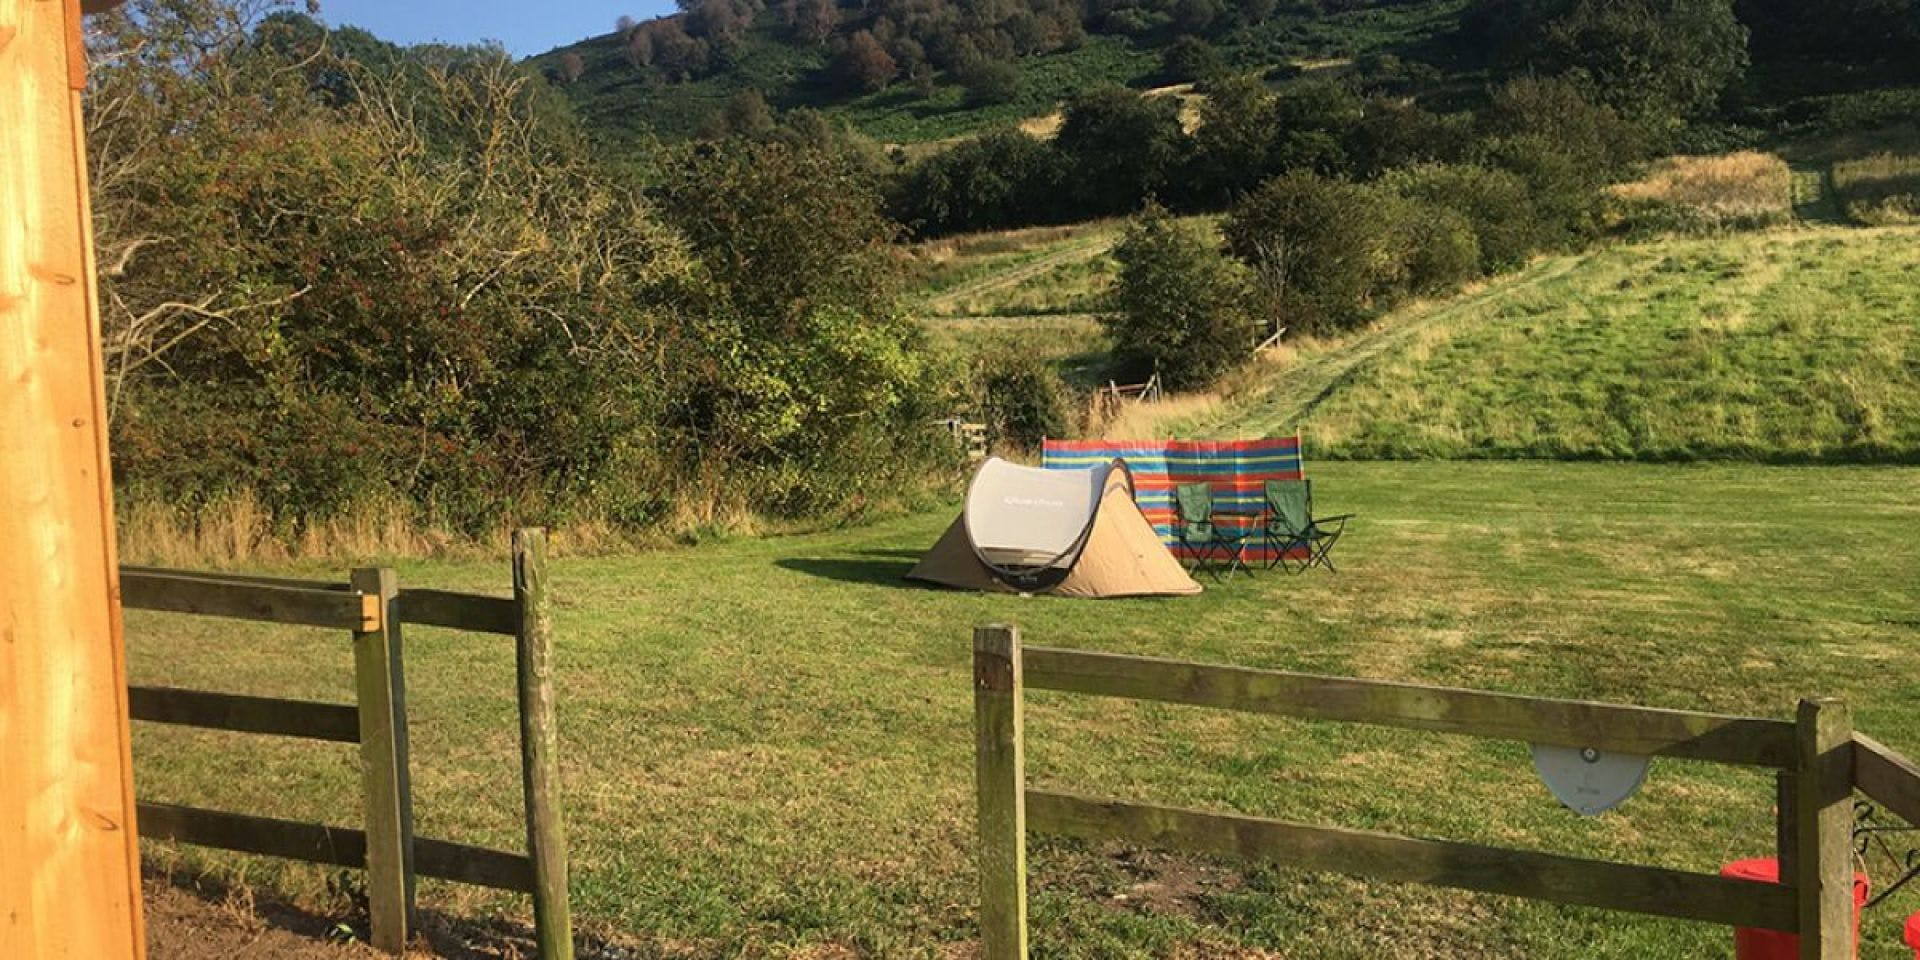 Mr Malcom's Marvellous Camping Field